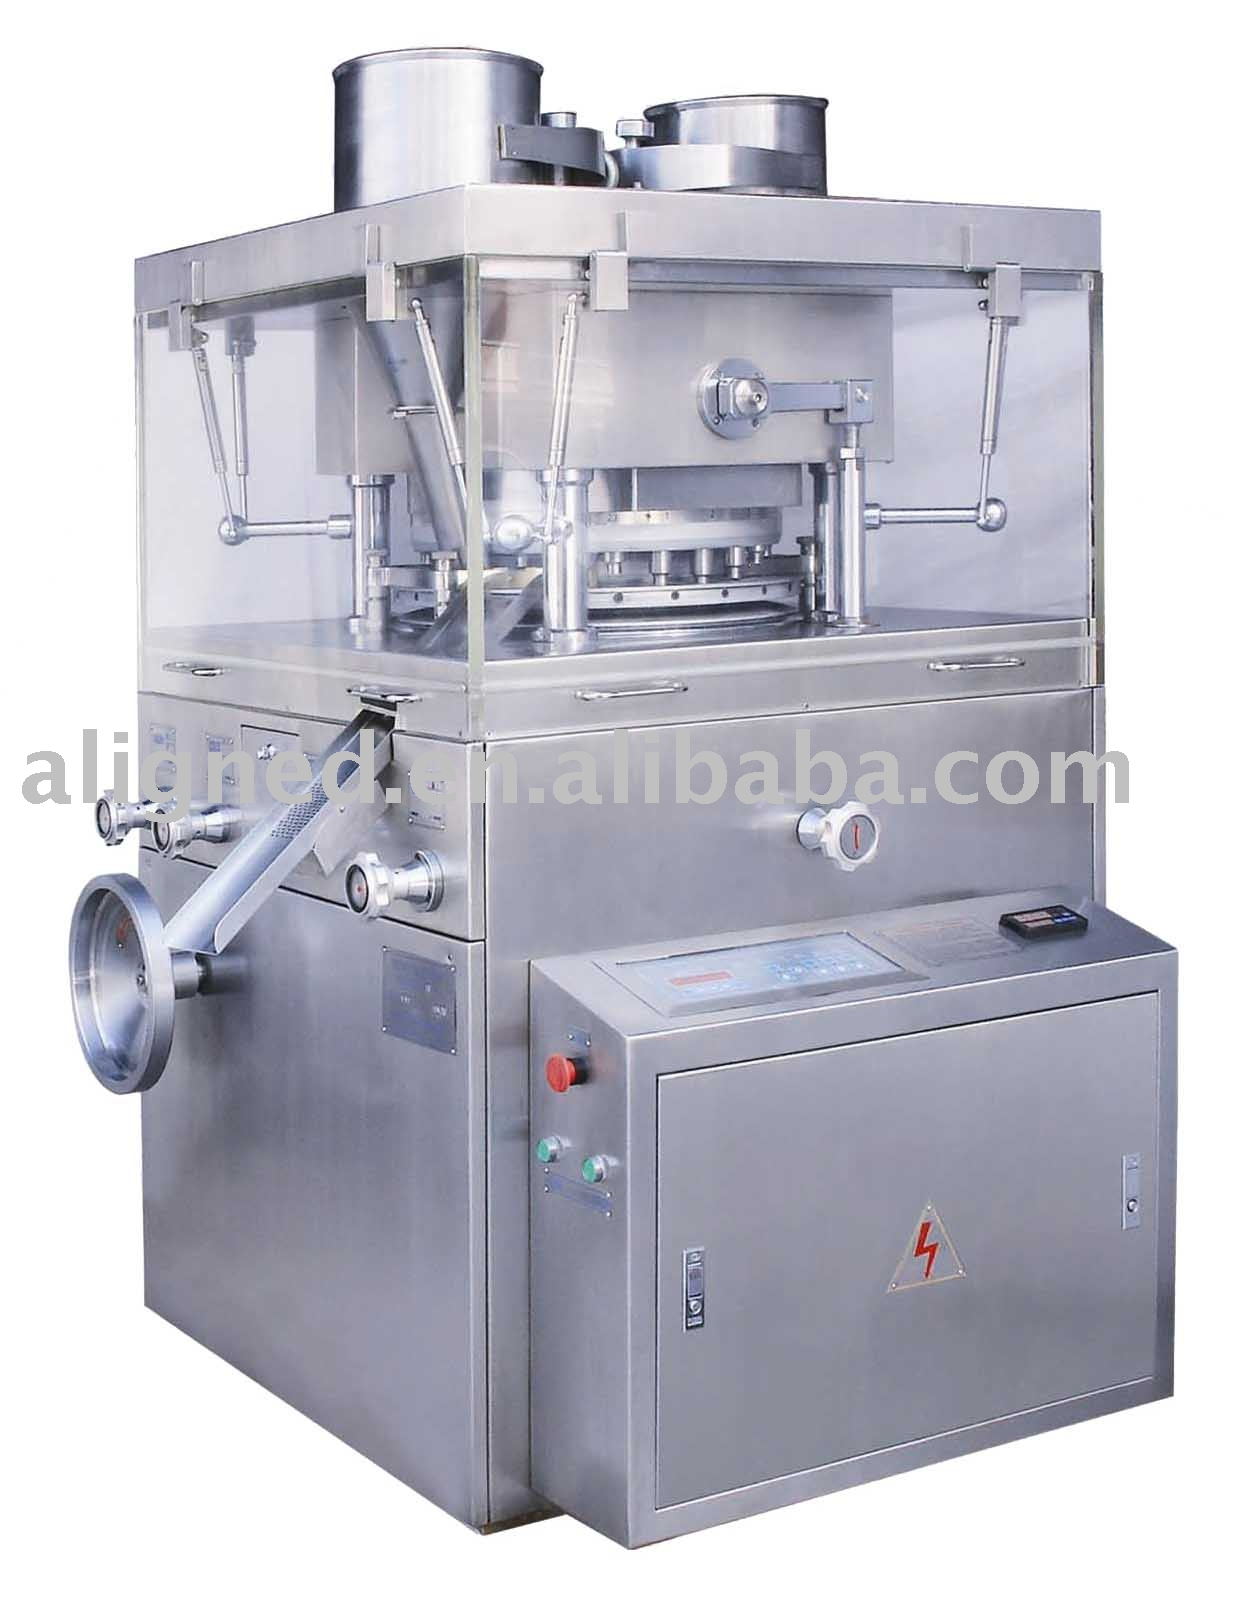 ZP Series Tablet Pressing Machine